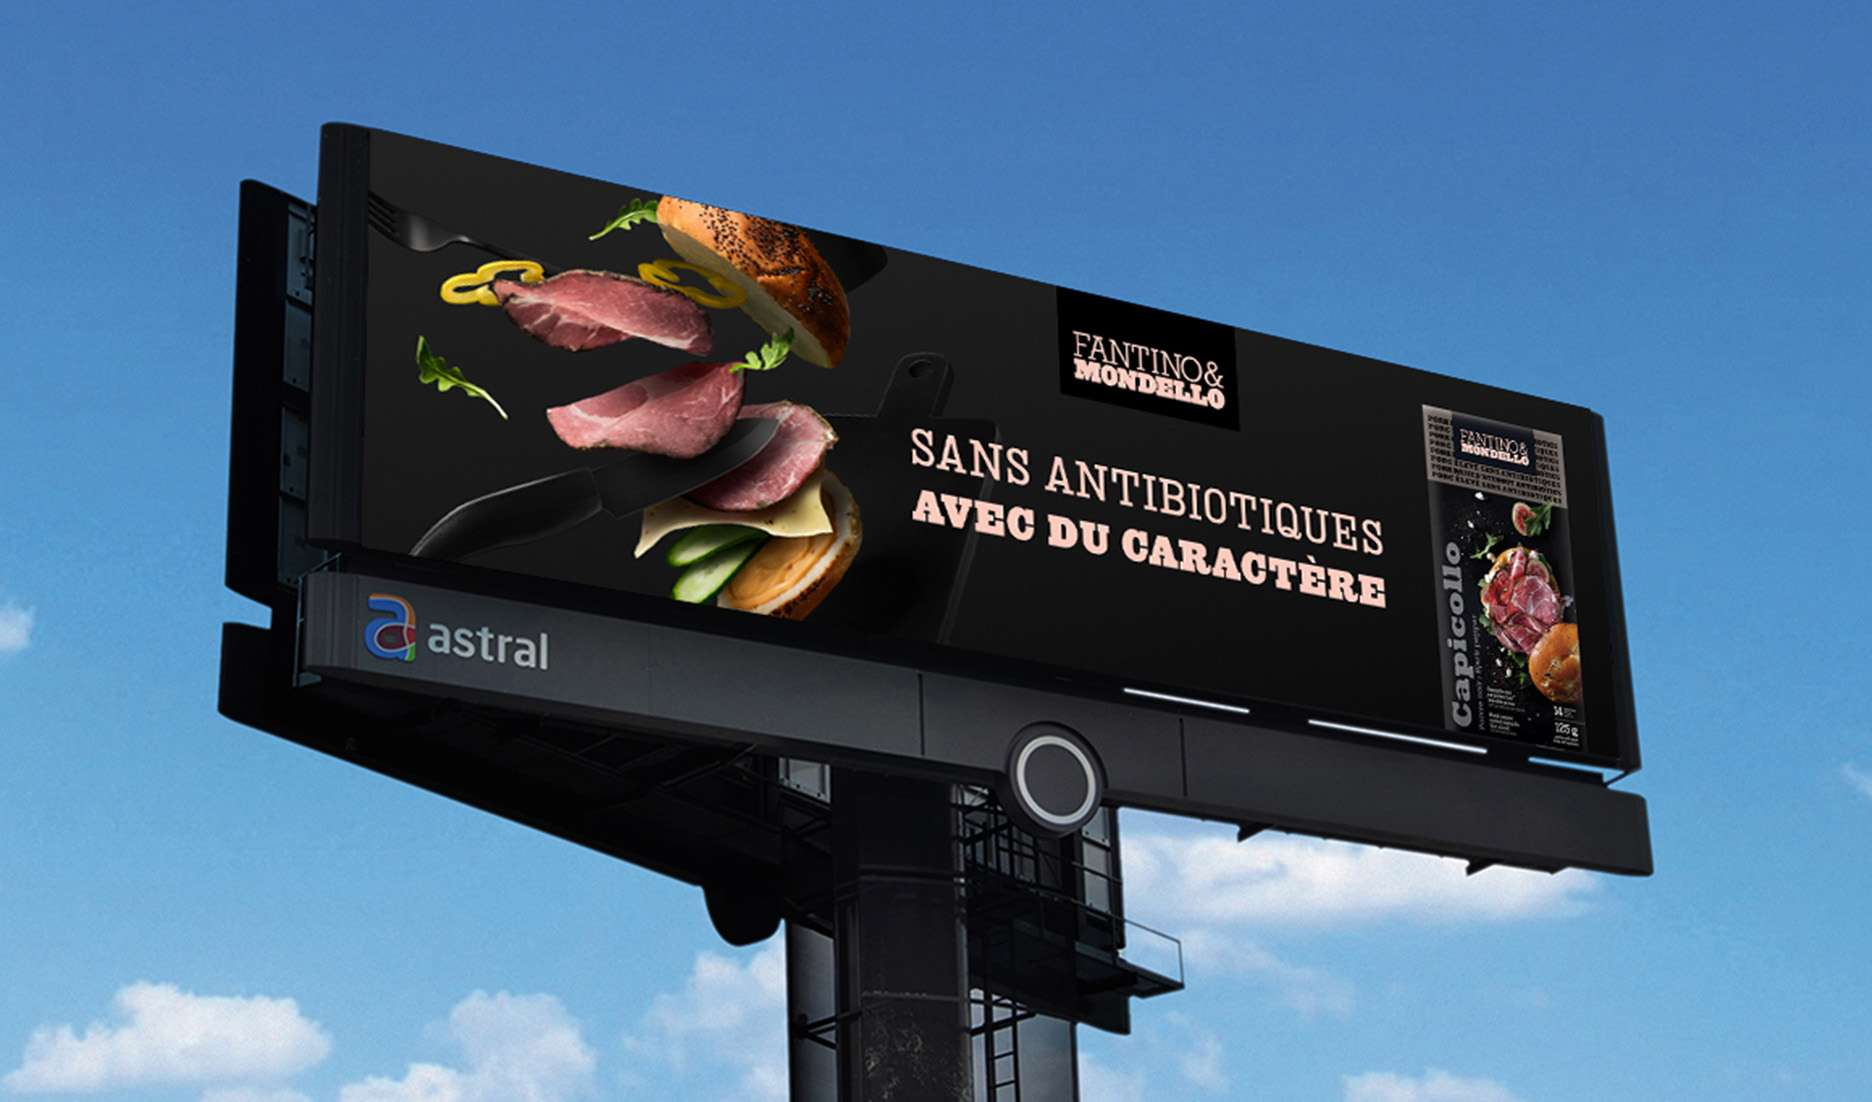 capicollo ham ad on billboard photographed by Mathieu Lévesque for Fantino & Mondello with Rethink agency